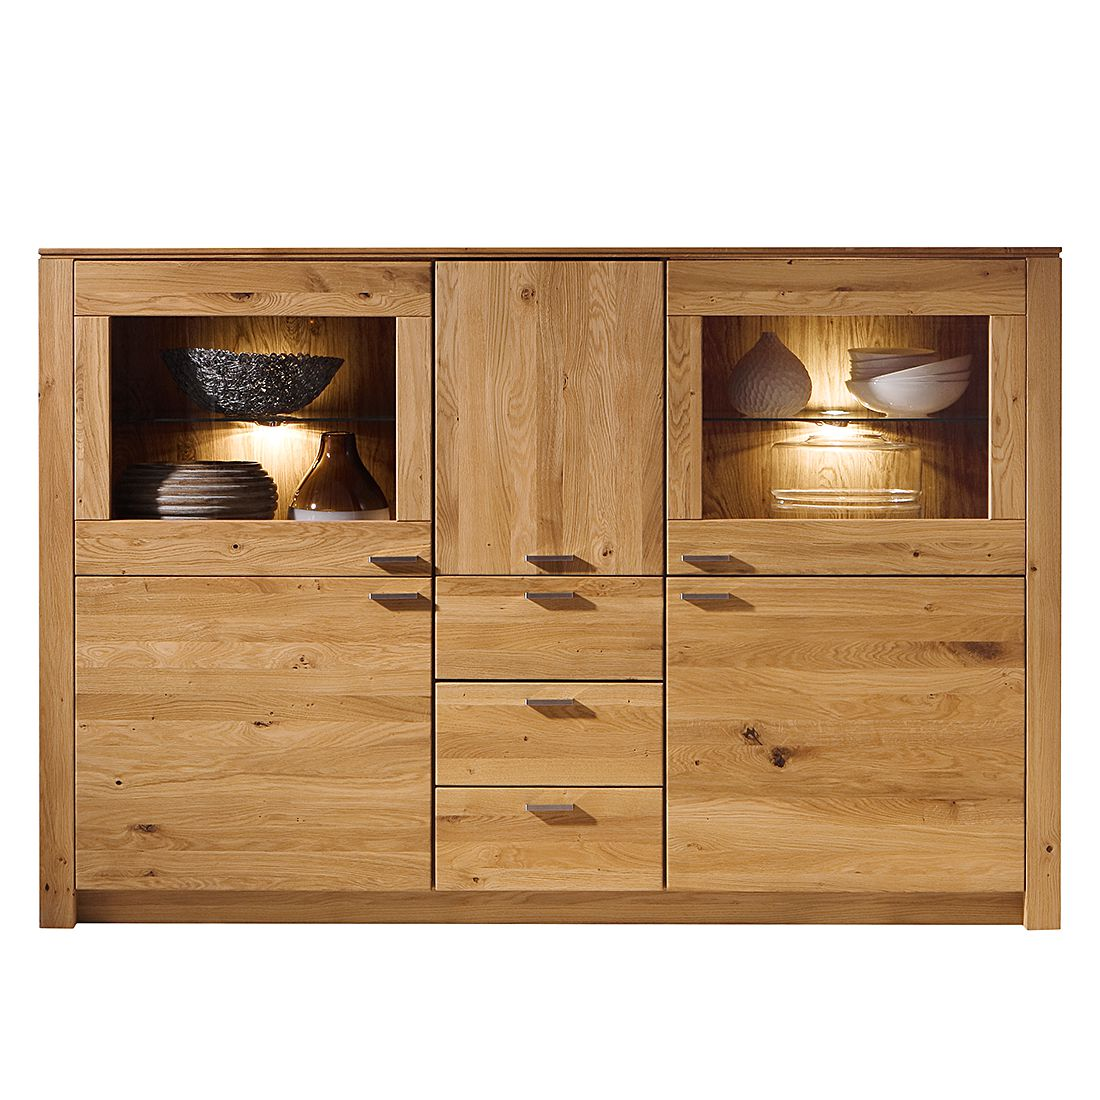 highboard chalet ii eiche teilmassiv ge lt gewachst highboard inklusive beleuchtung. Black Bedroom Furniture Sets. Home Design Ideas